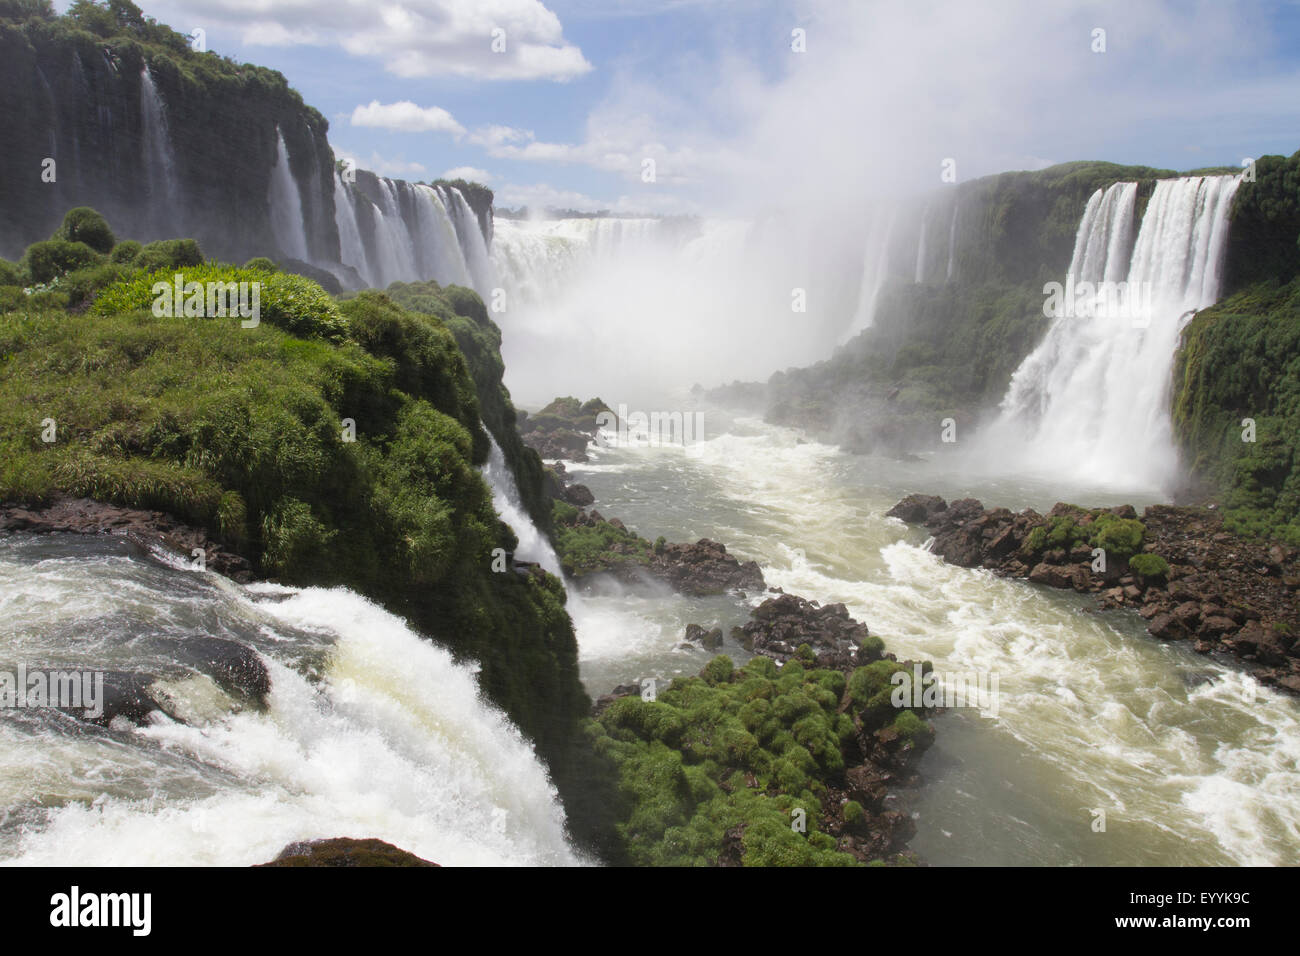 Looking down the devils throat at the Iguassu Falls - Stock Image